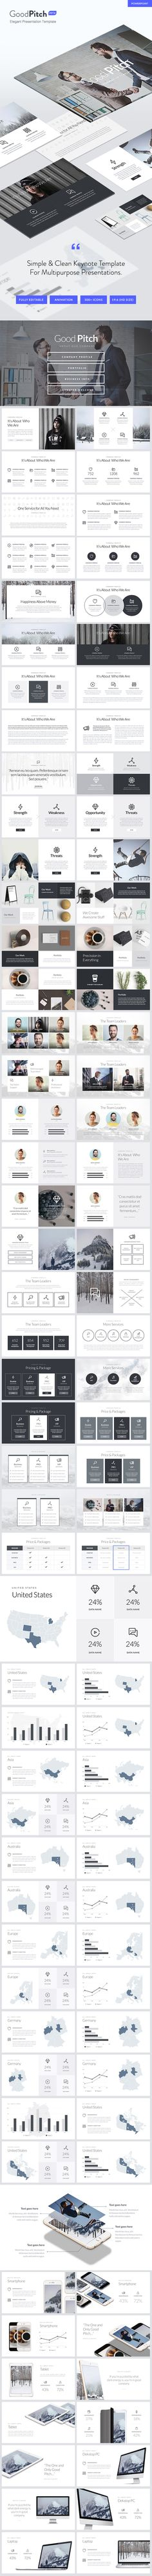 Good Pitch  Elegant Powerpoint Template — Powerpoint PPTX #black and white #pitch • Download ➝ https://graphicriver.net/item/good-pitch-elegant-powerpoint-template/19427289?ref=pxcr